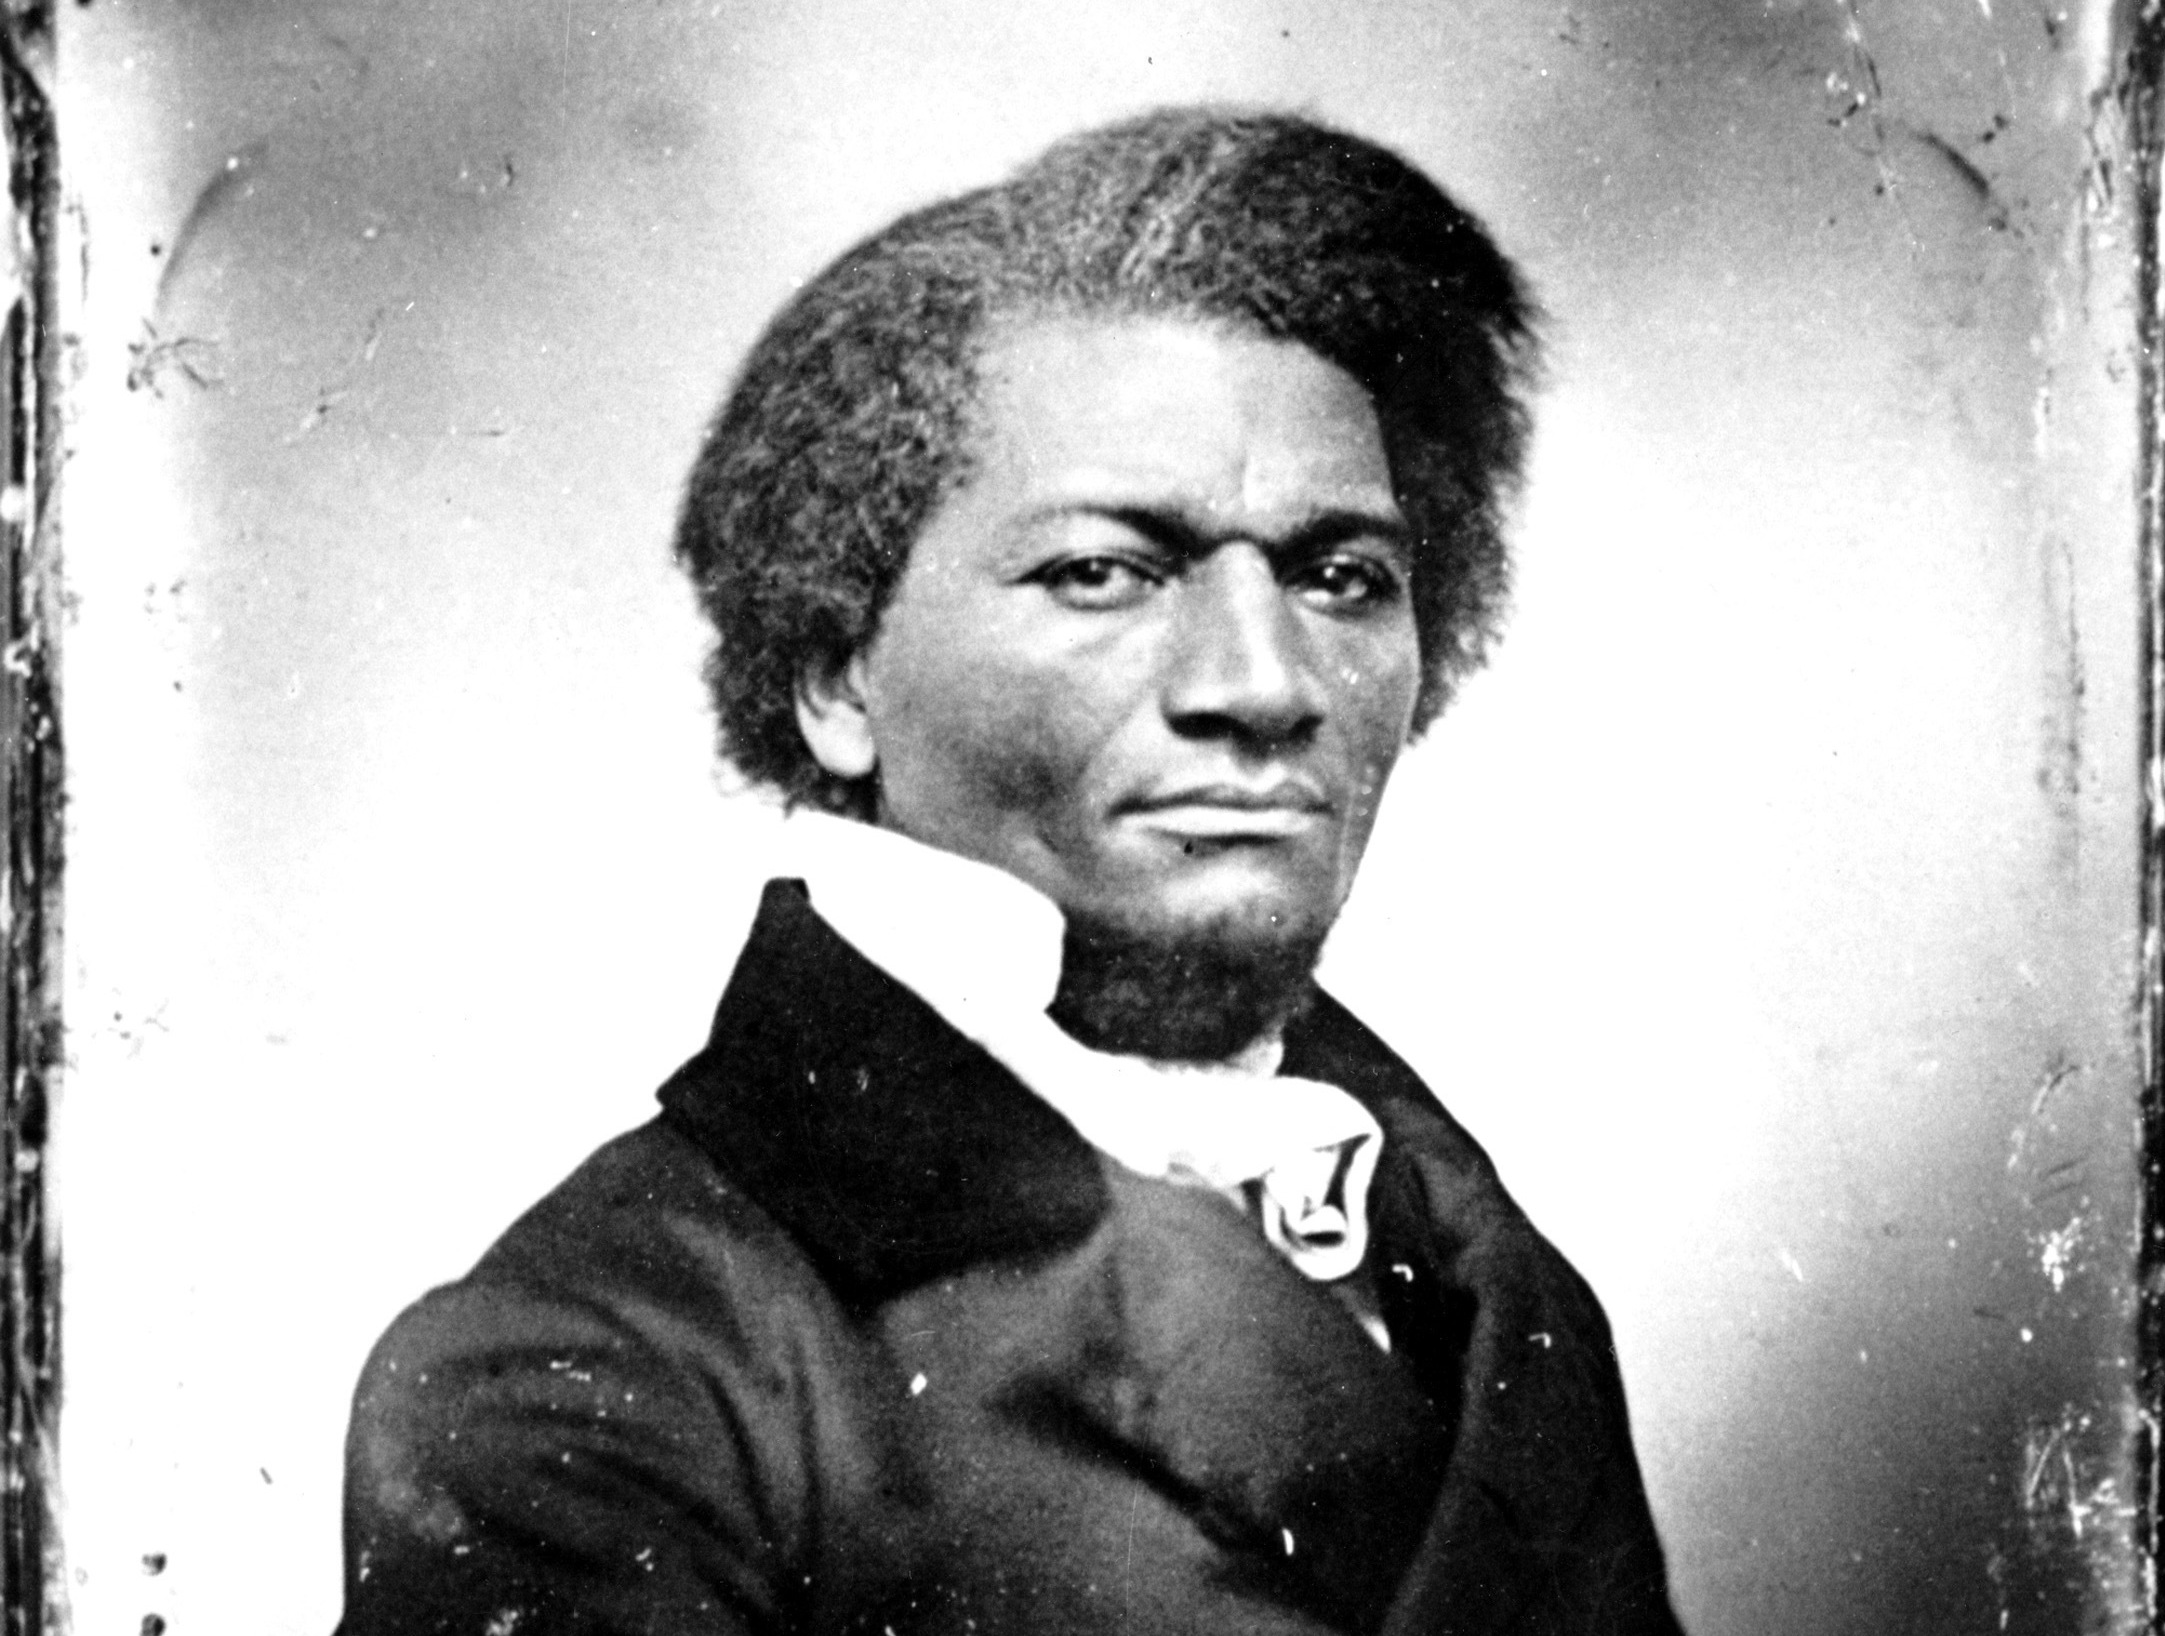 Frederick Douglass documents, newly acquired by Yale, reveal 'hope for the country'